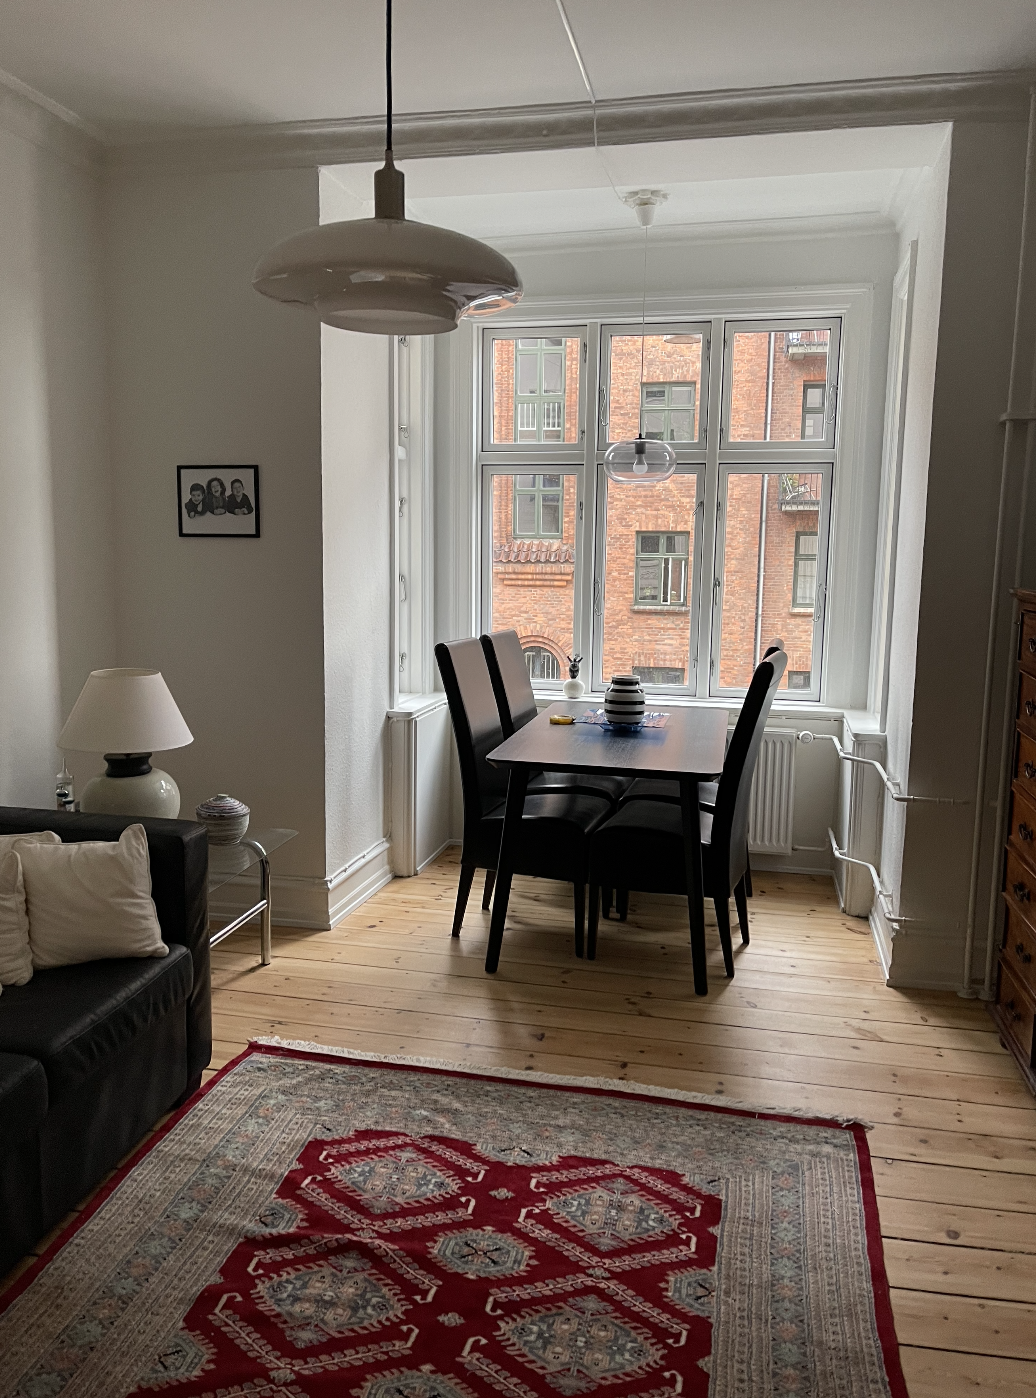 Room for rent at Islands Brygge(Njalsgade)